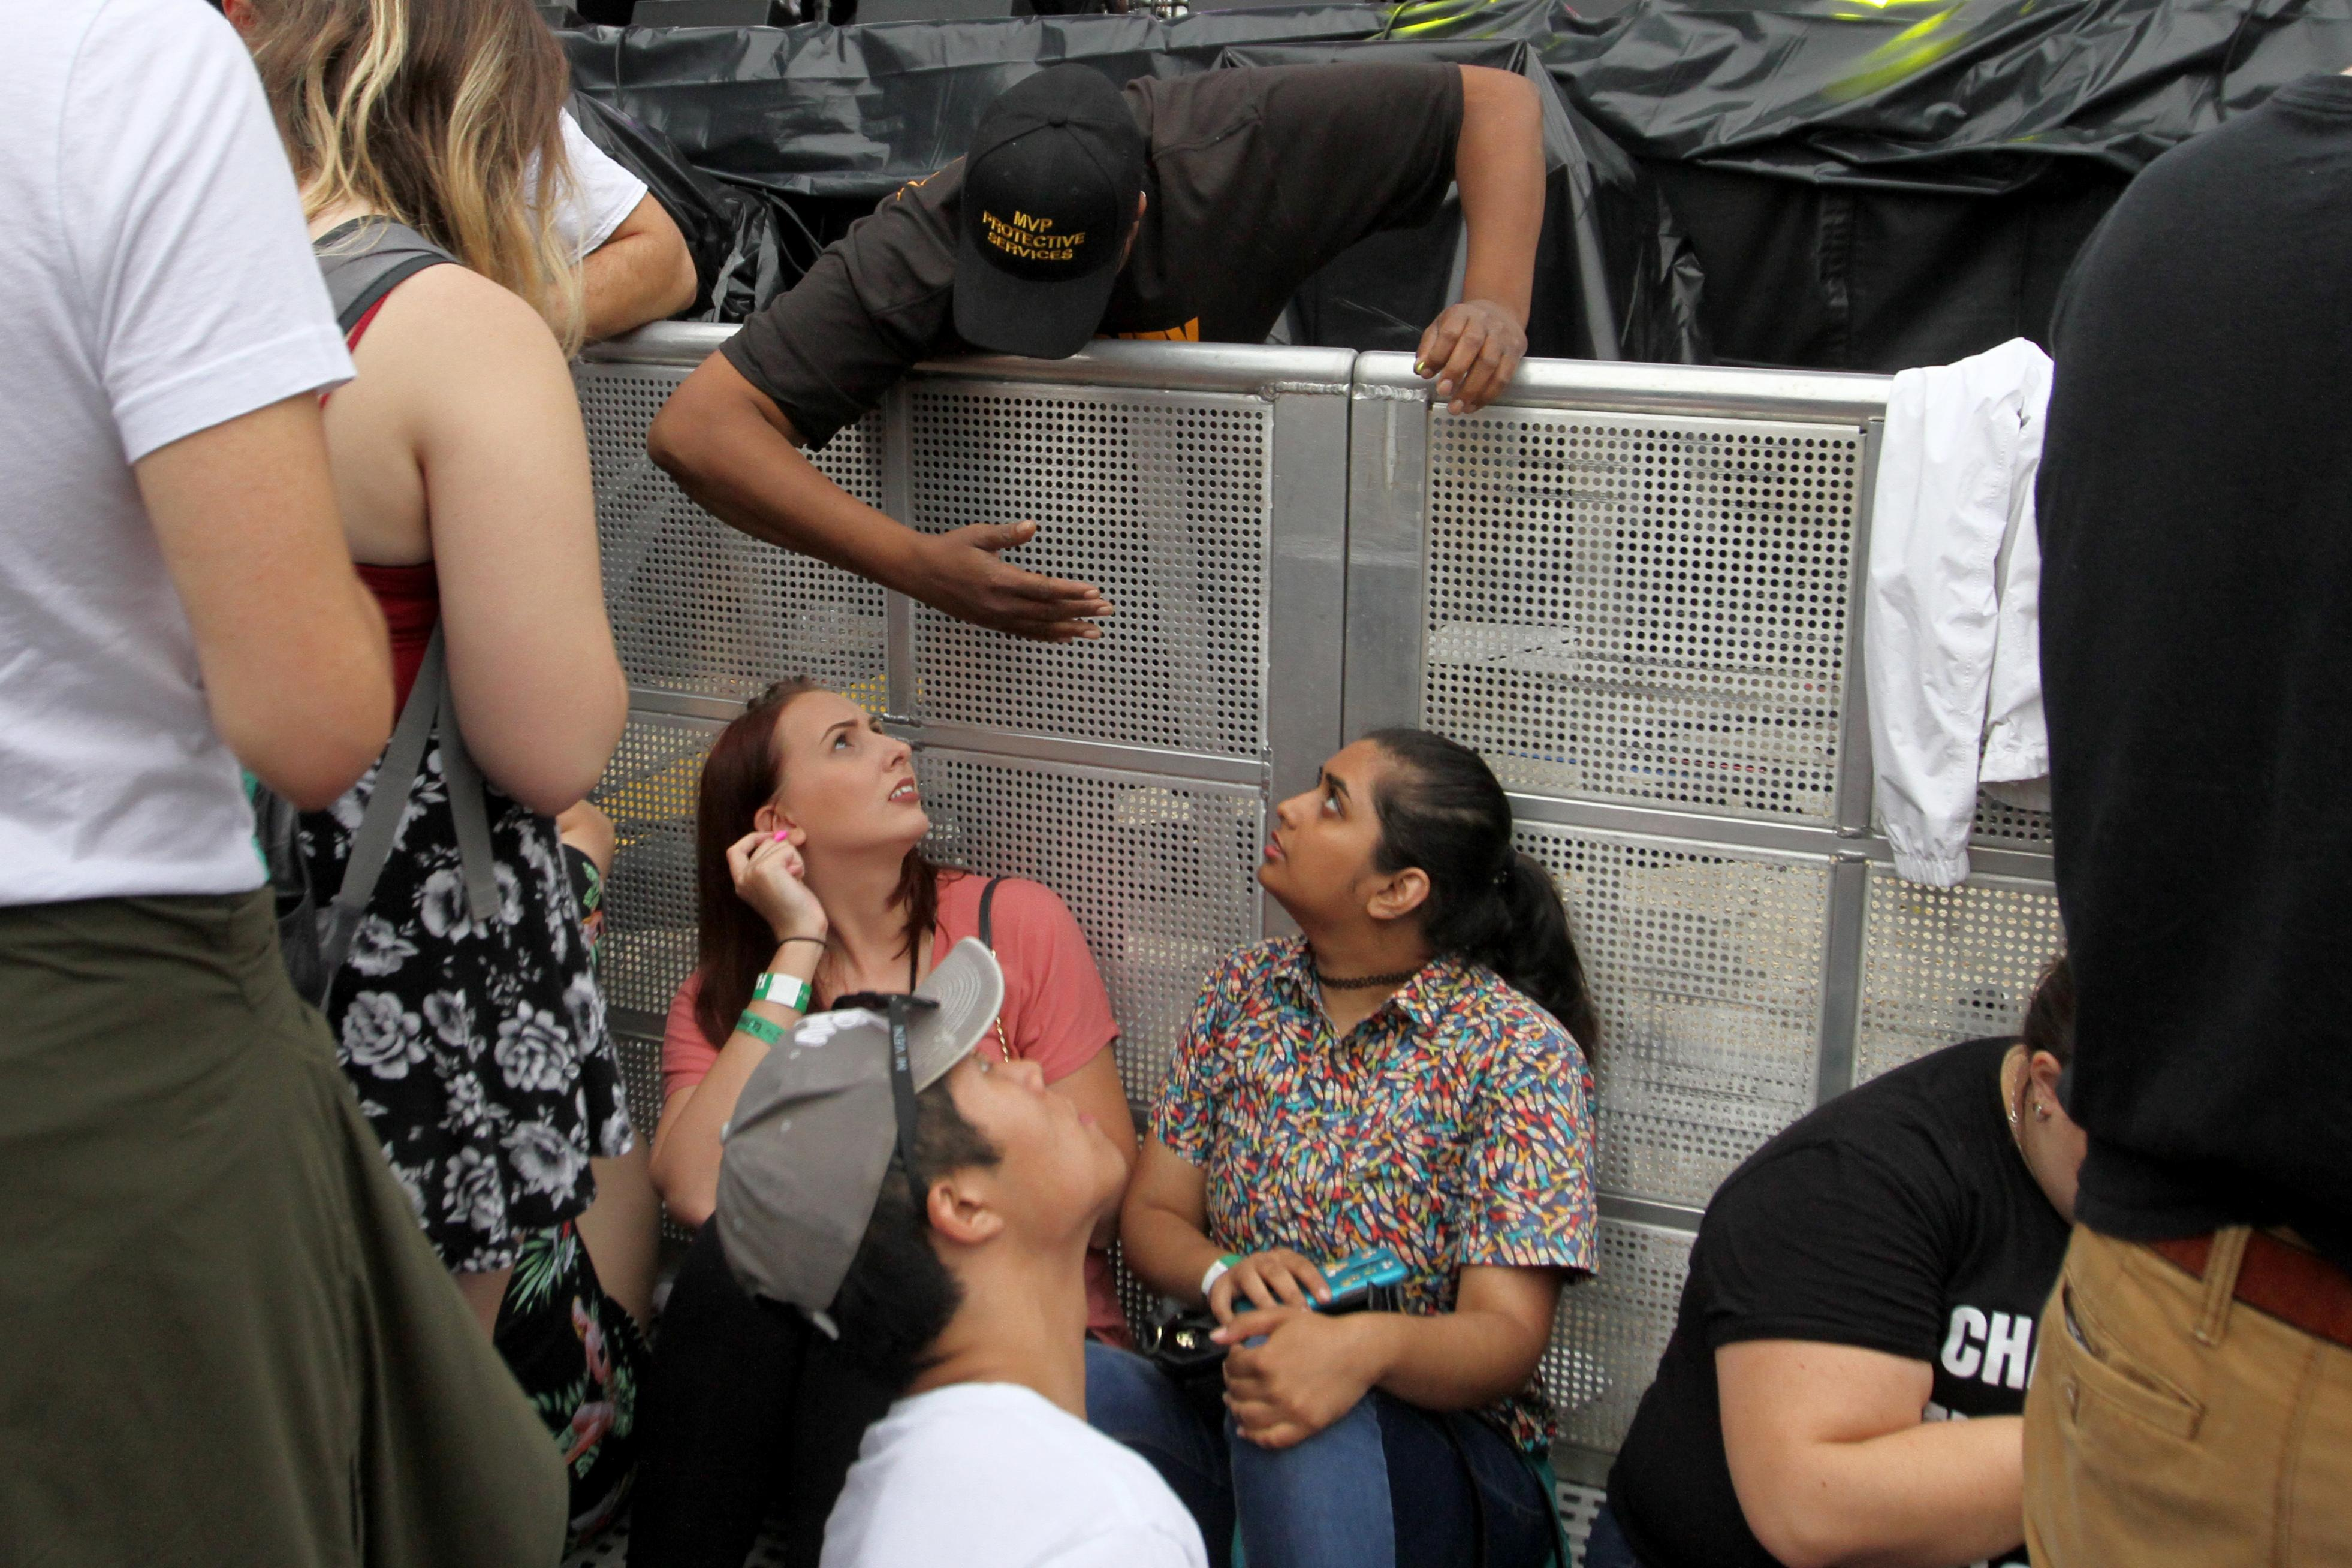 The final day of All Things Go brought the biggest crowds yet. Although Bleachers and Betty Who drew lots of music fans,  rain didn't stop festival-goers from jamming out to headliner Foster The People. After discussing gun violence and the attack in Las Vegas, the band decided not to perform their hit 'Pumped Up Kicks', which is about a school shooting. (Amanda Andrade-Rhoades/DC Refined)